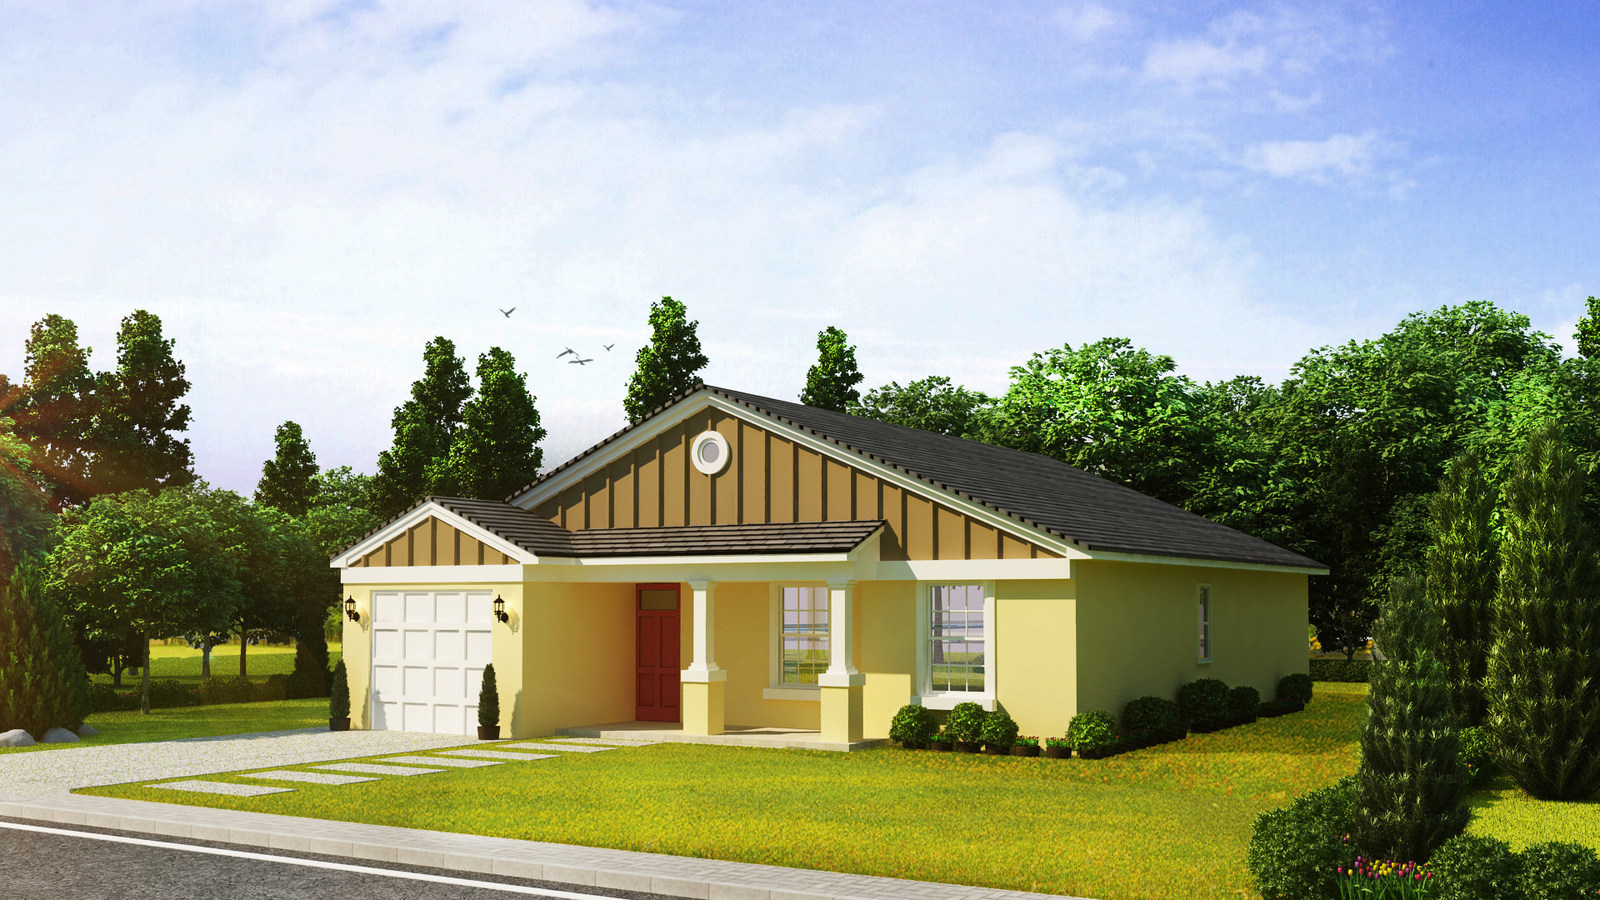 Tampa Approves Domain Homes Urban Project | Builder Magazine ...